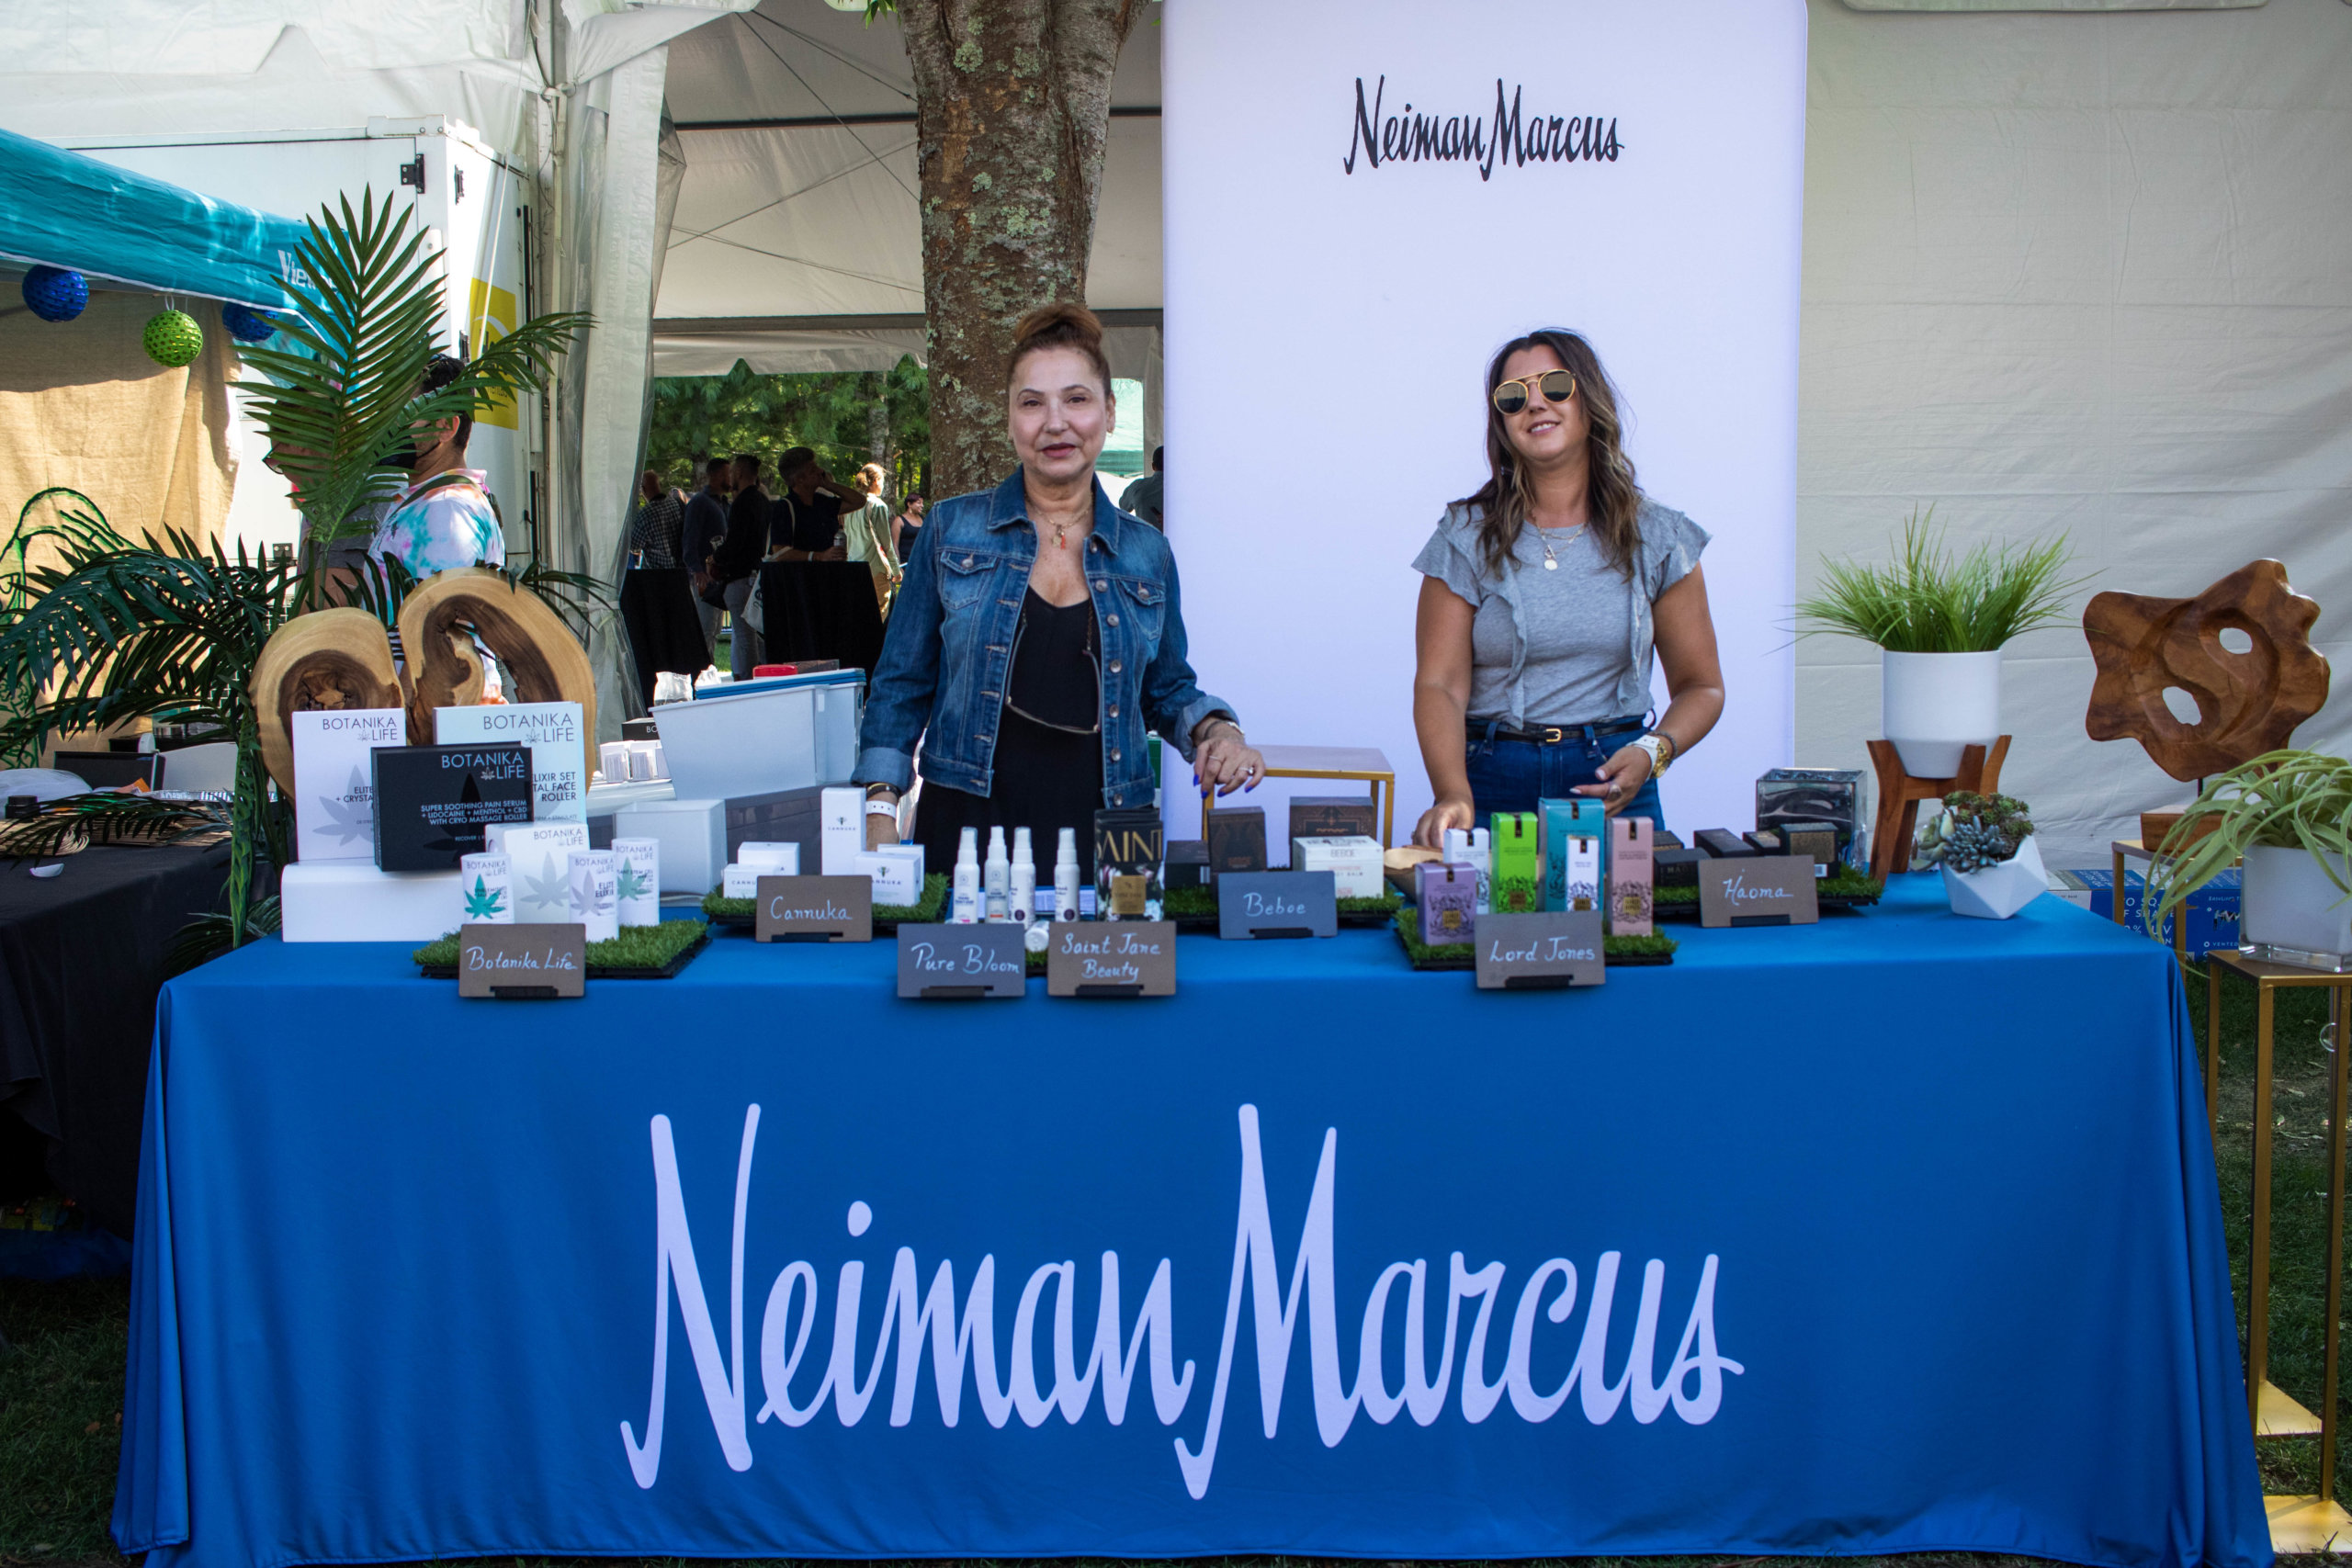 The Neiman Marcus booth at Hamptons Cannabis Expo